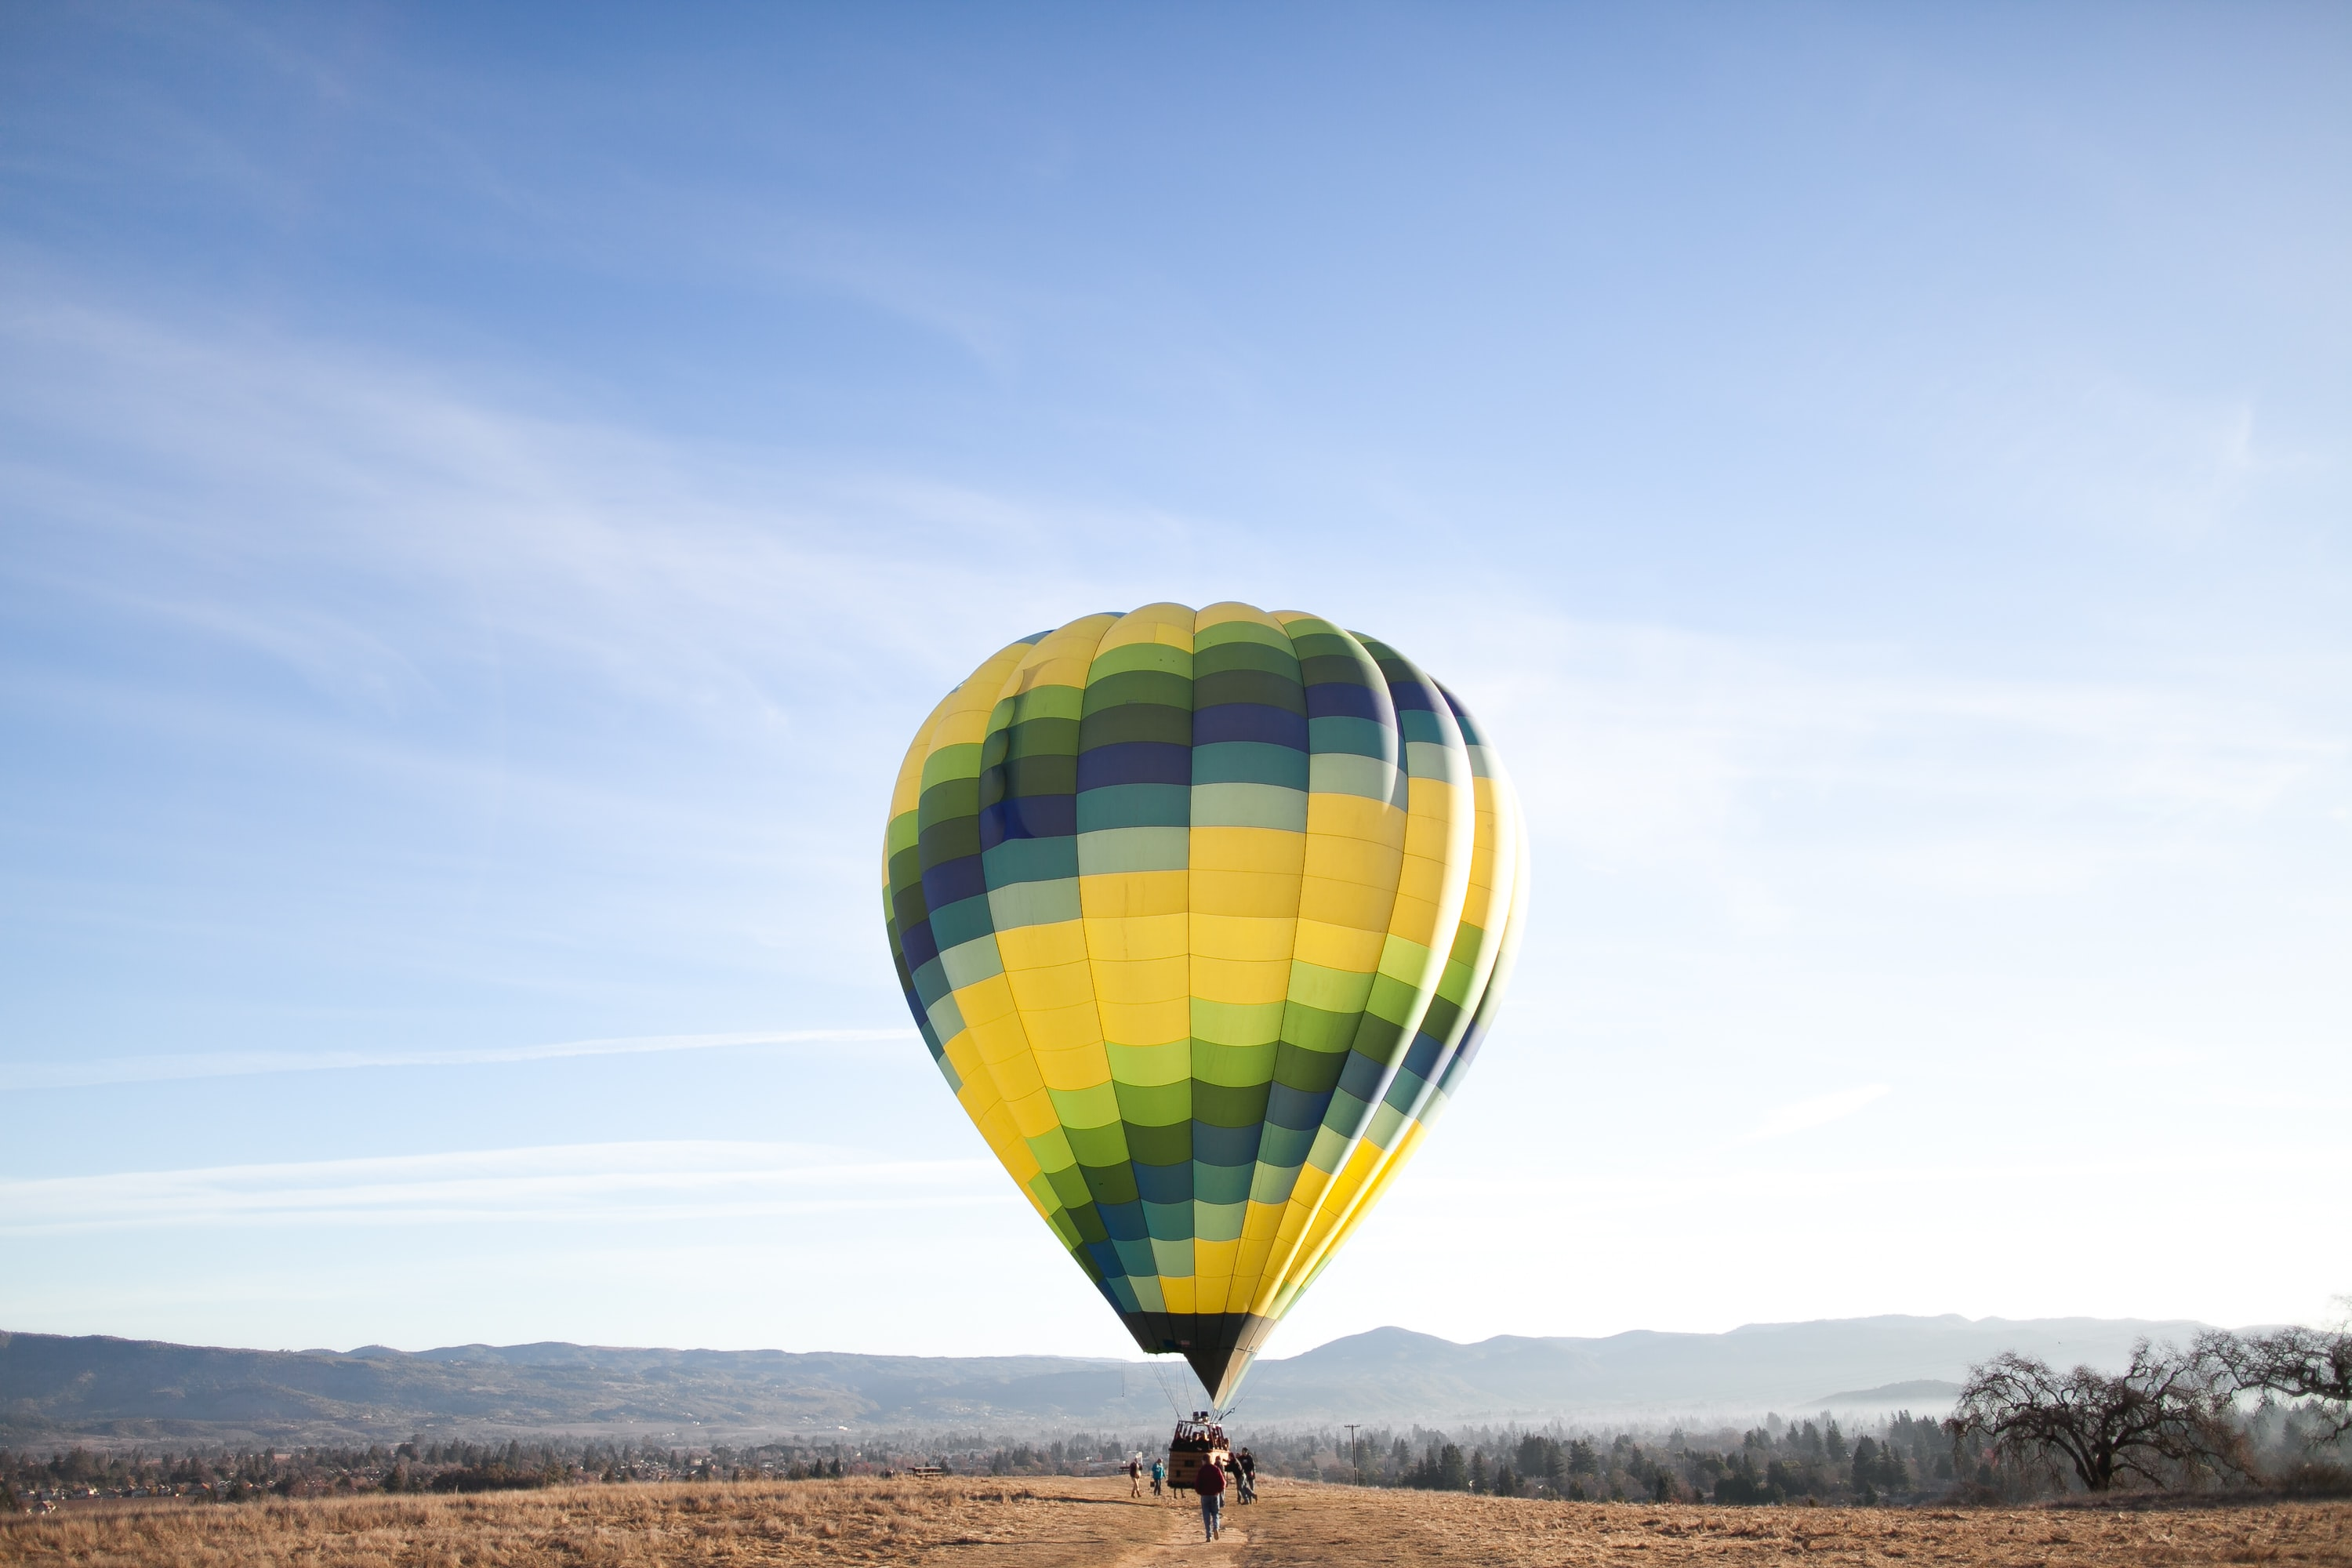 yellow and blue hot air balloon at the ground